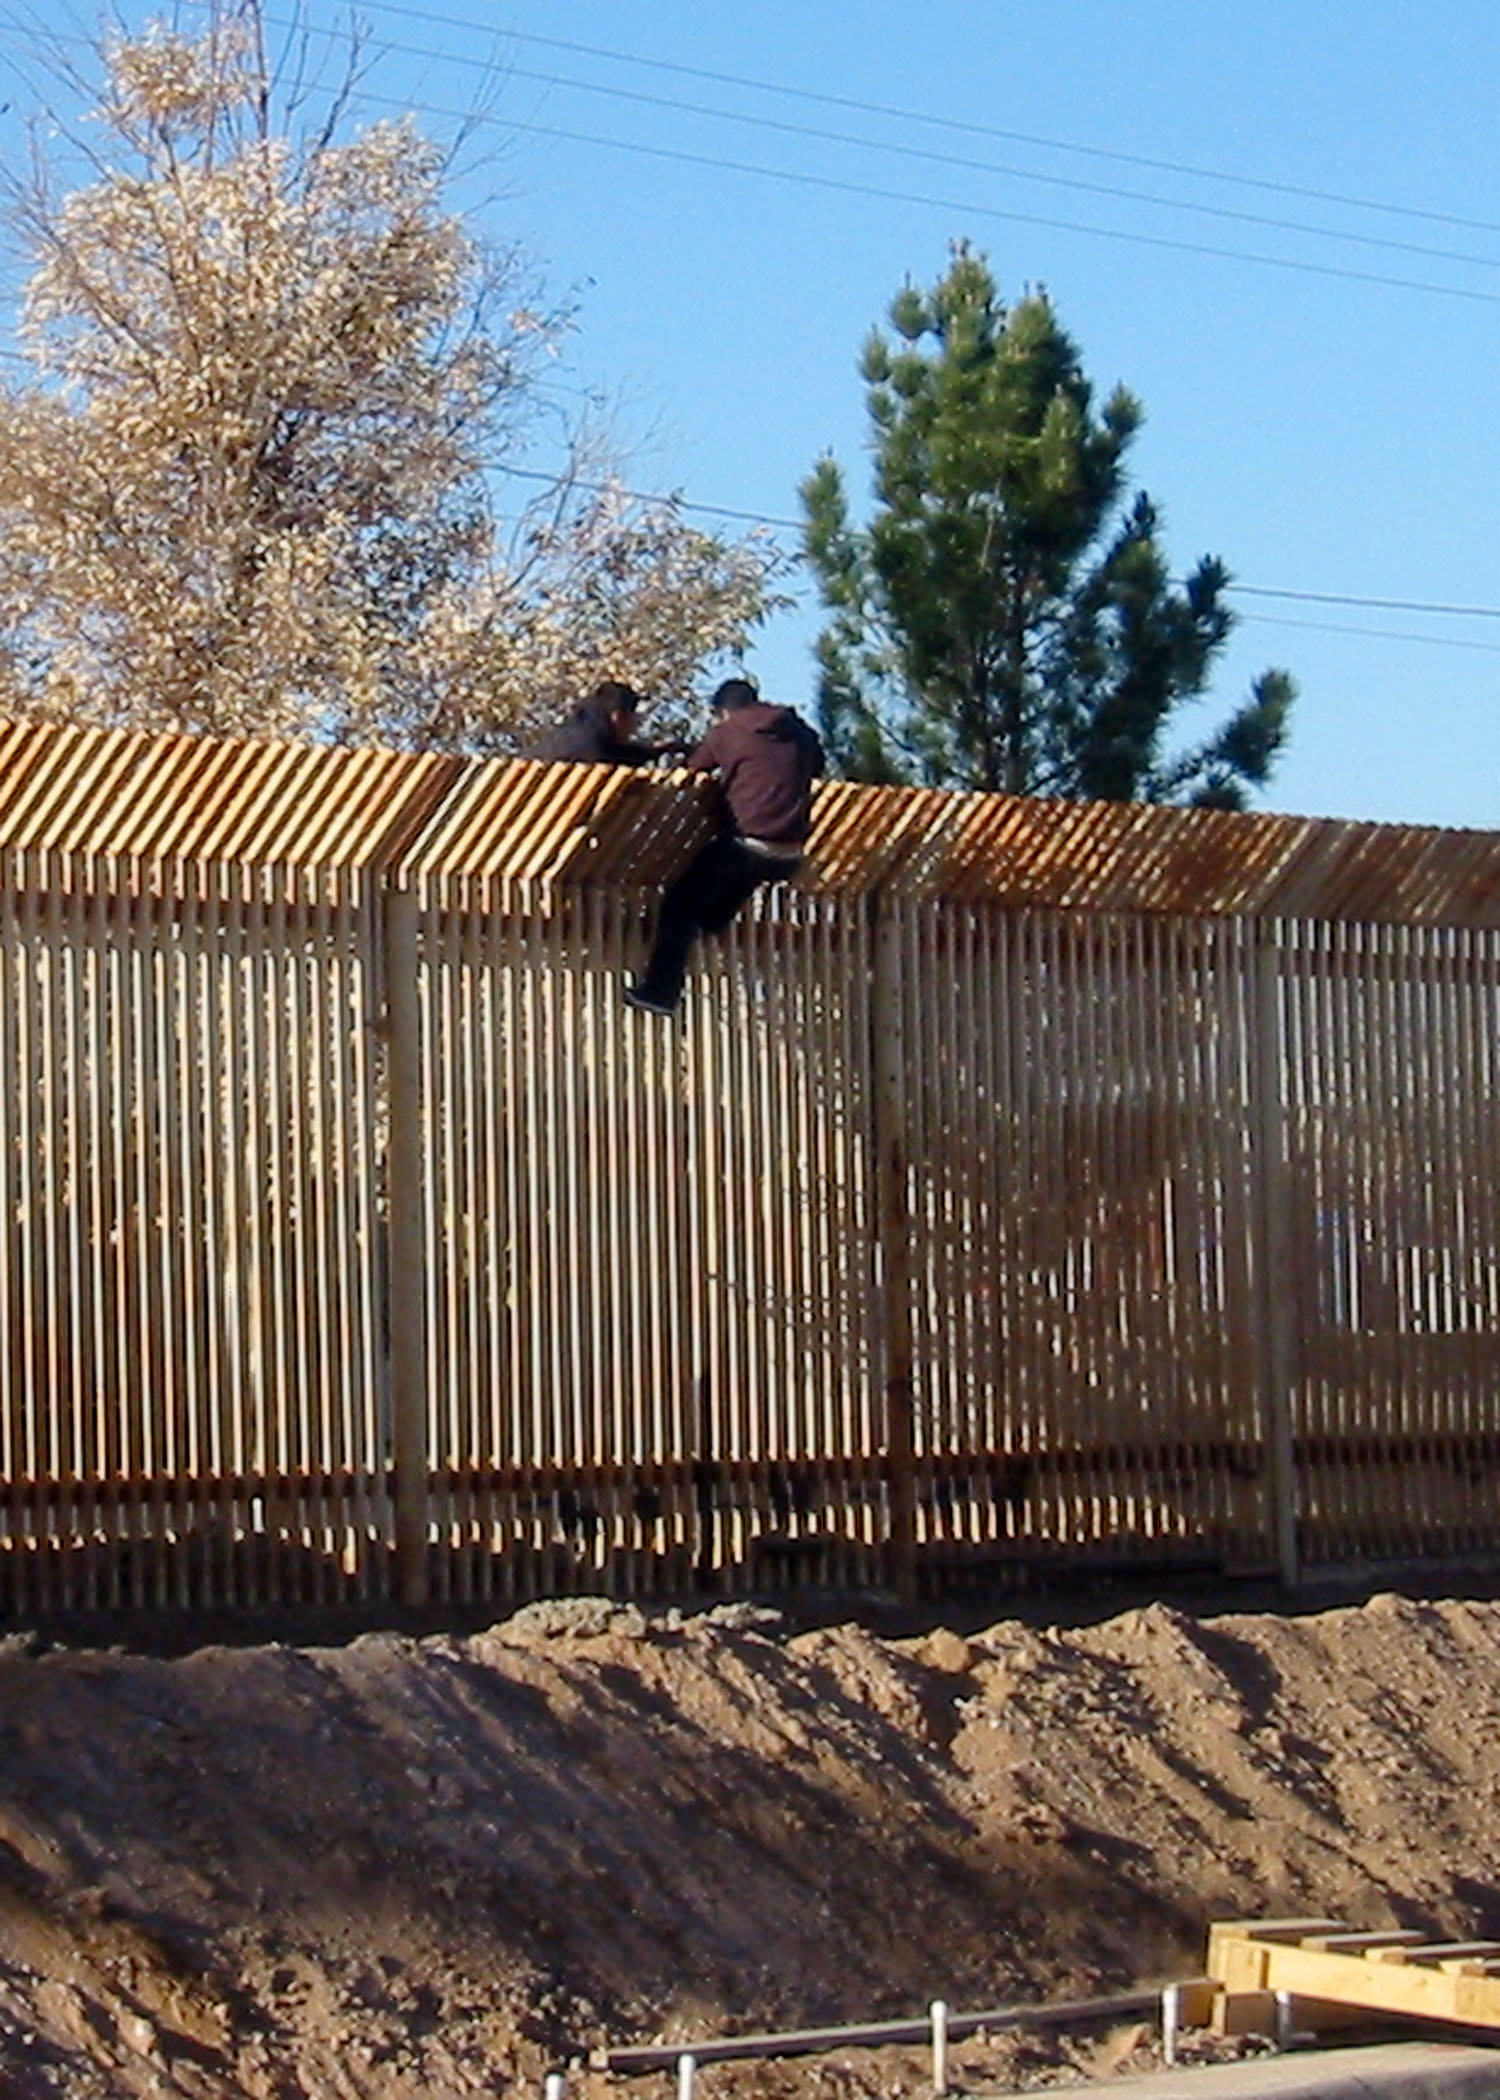 Border fence construction underway in New Mexico